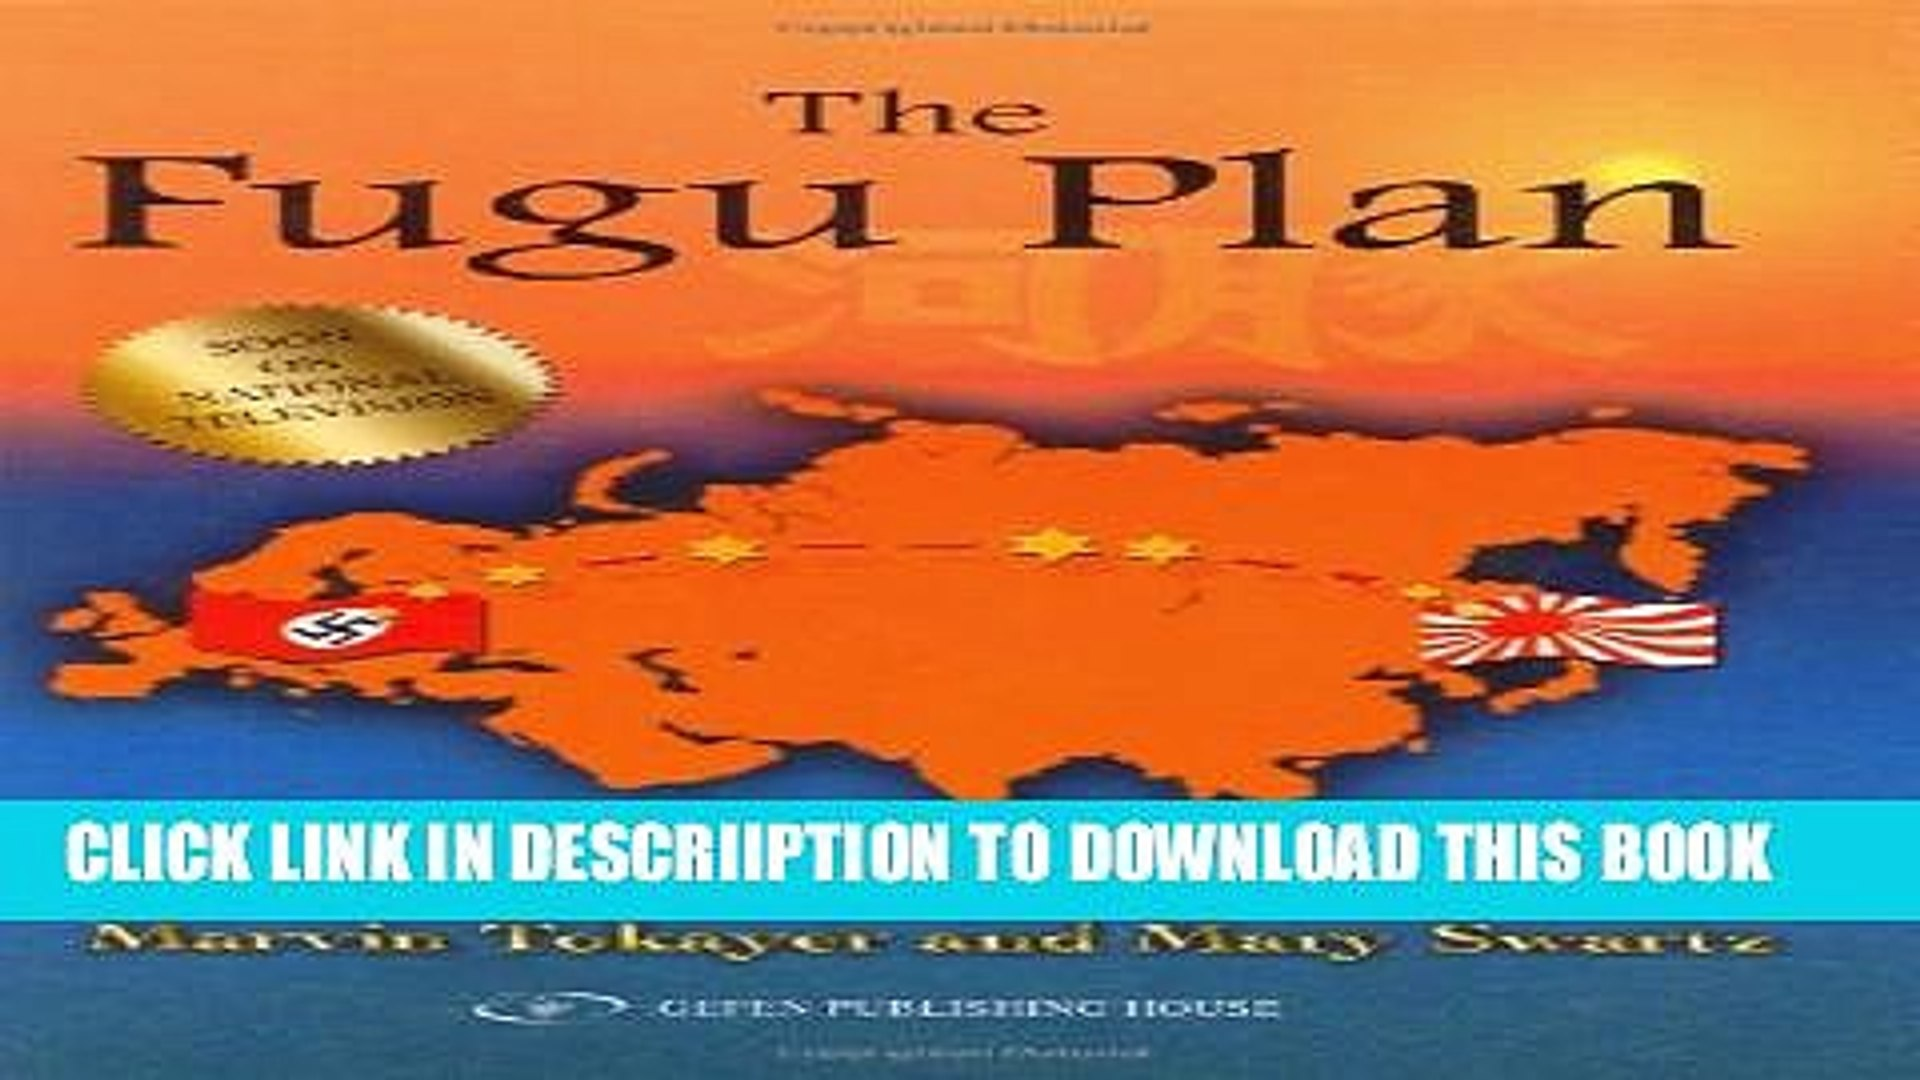 [PDF] The Fugu Plan: The Untold Story of the Japanese and the Jews During World War II Full Online